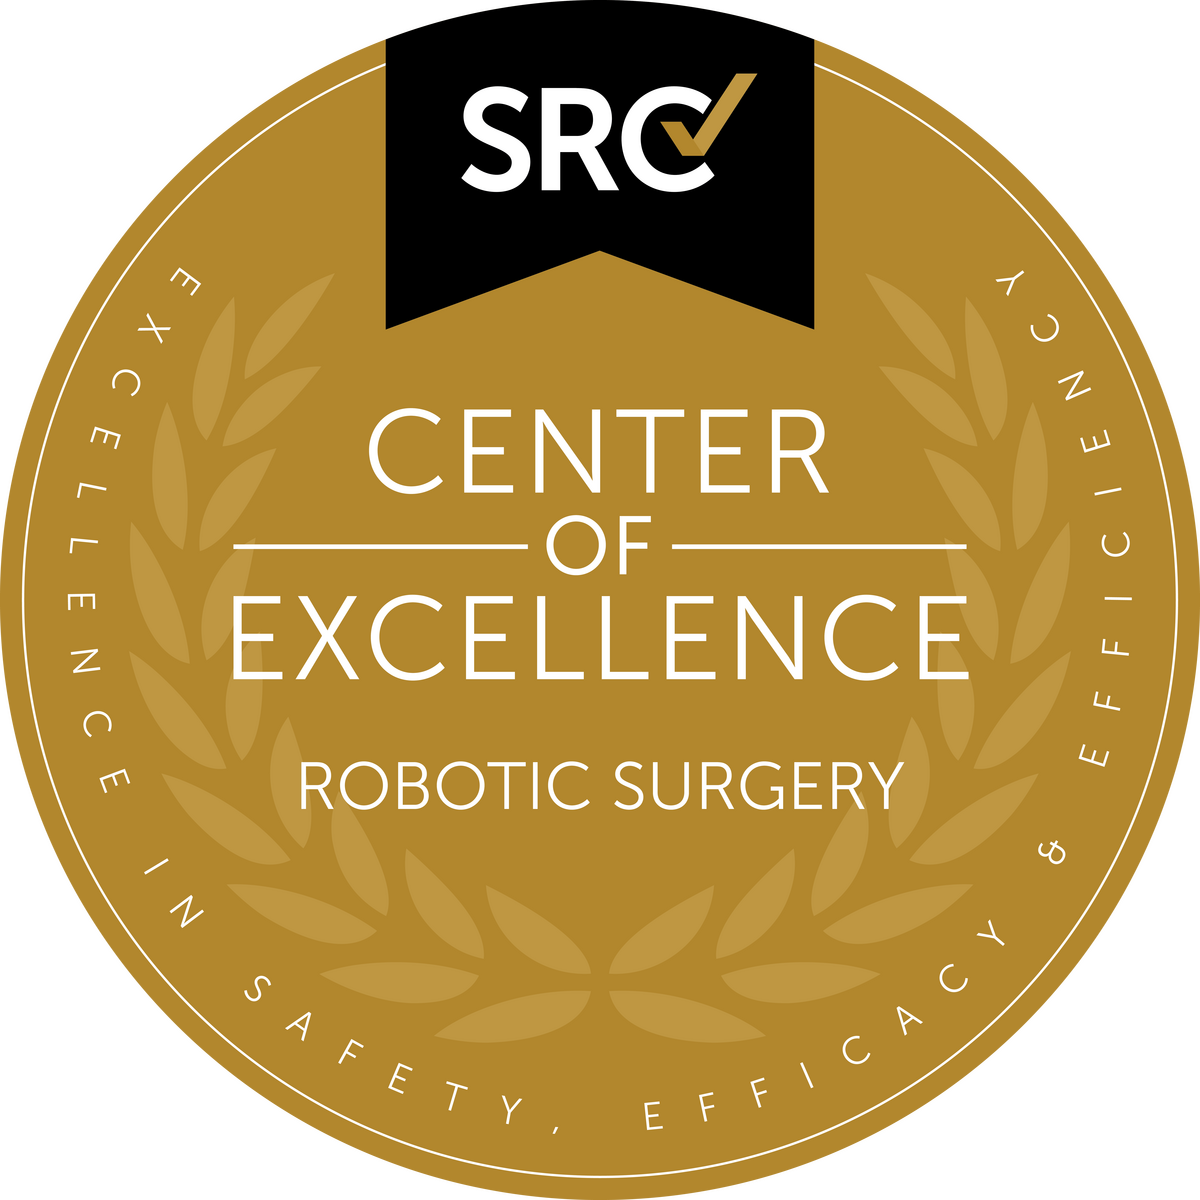 Robotic Surgery Center of Excellence